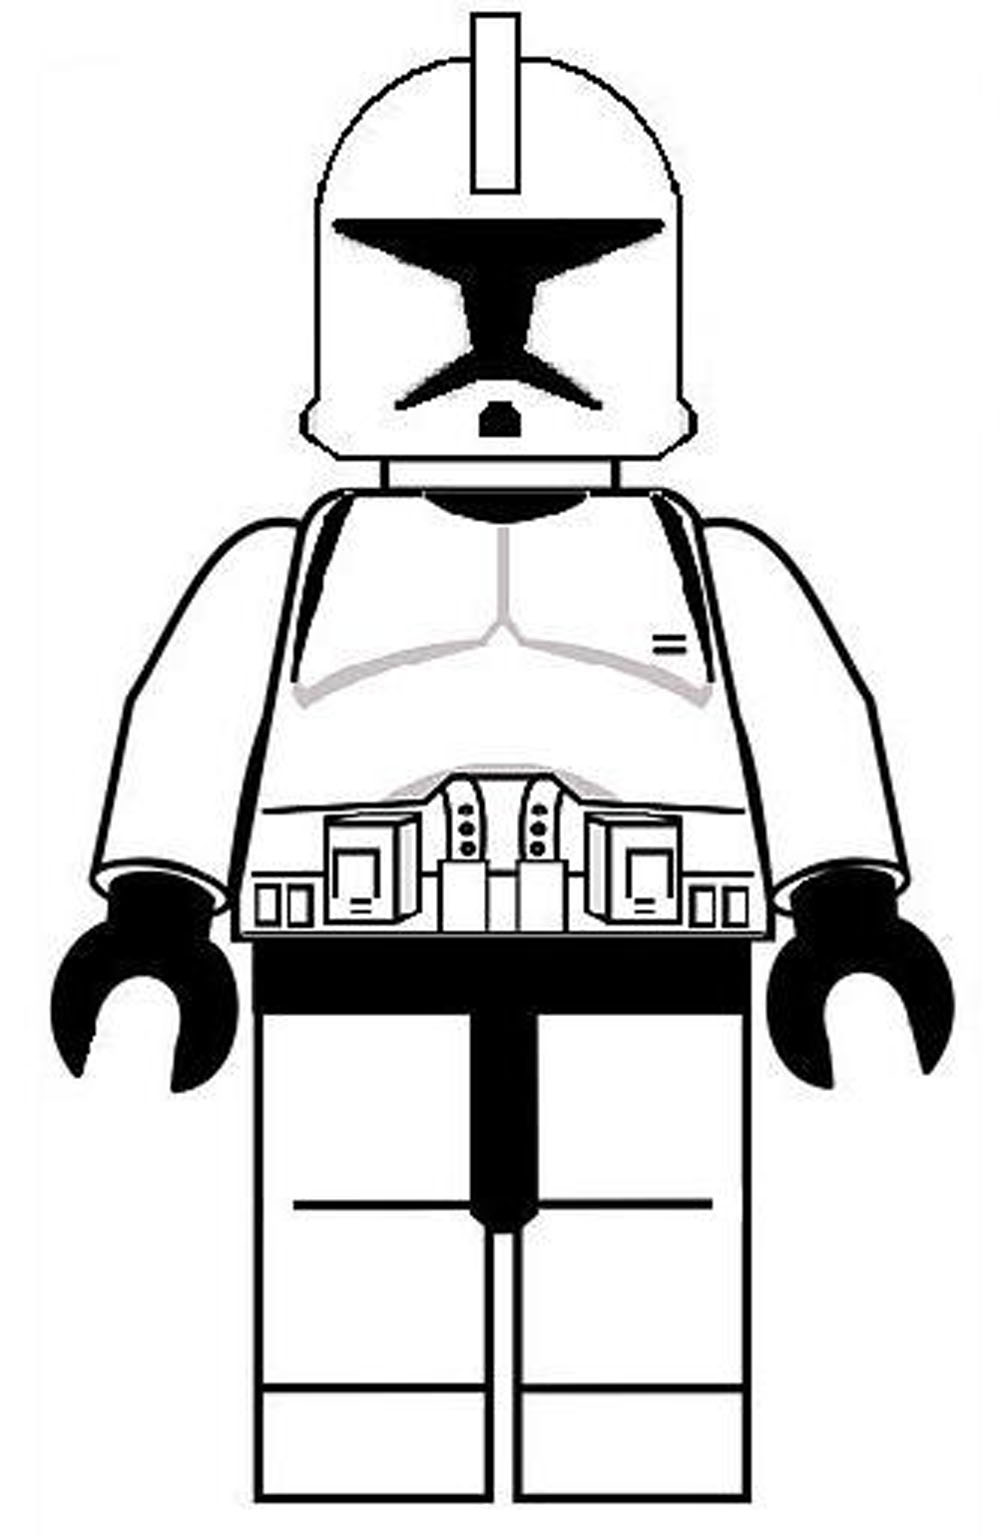 lego star wars pictures to color lego star wars characters coloring pages at getcolorings pictures wars color lego to star